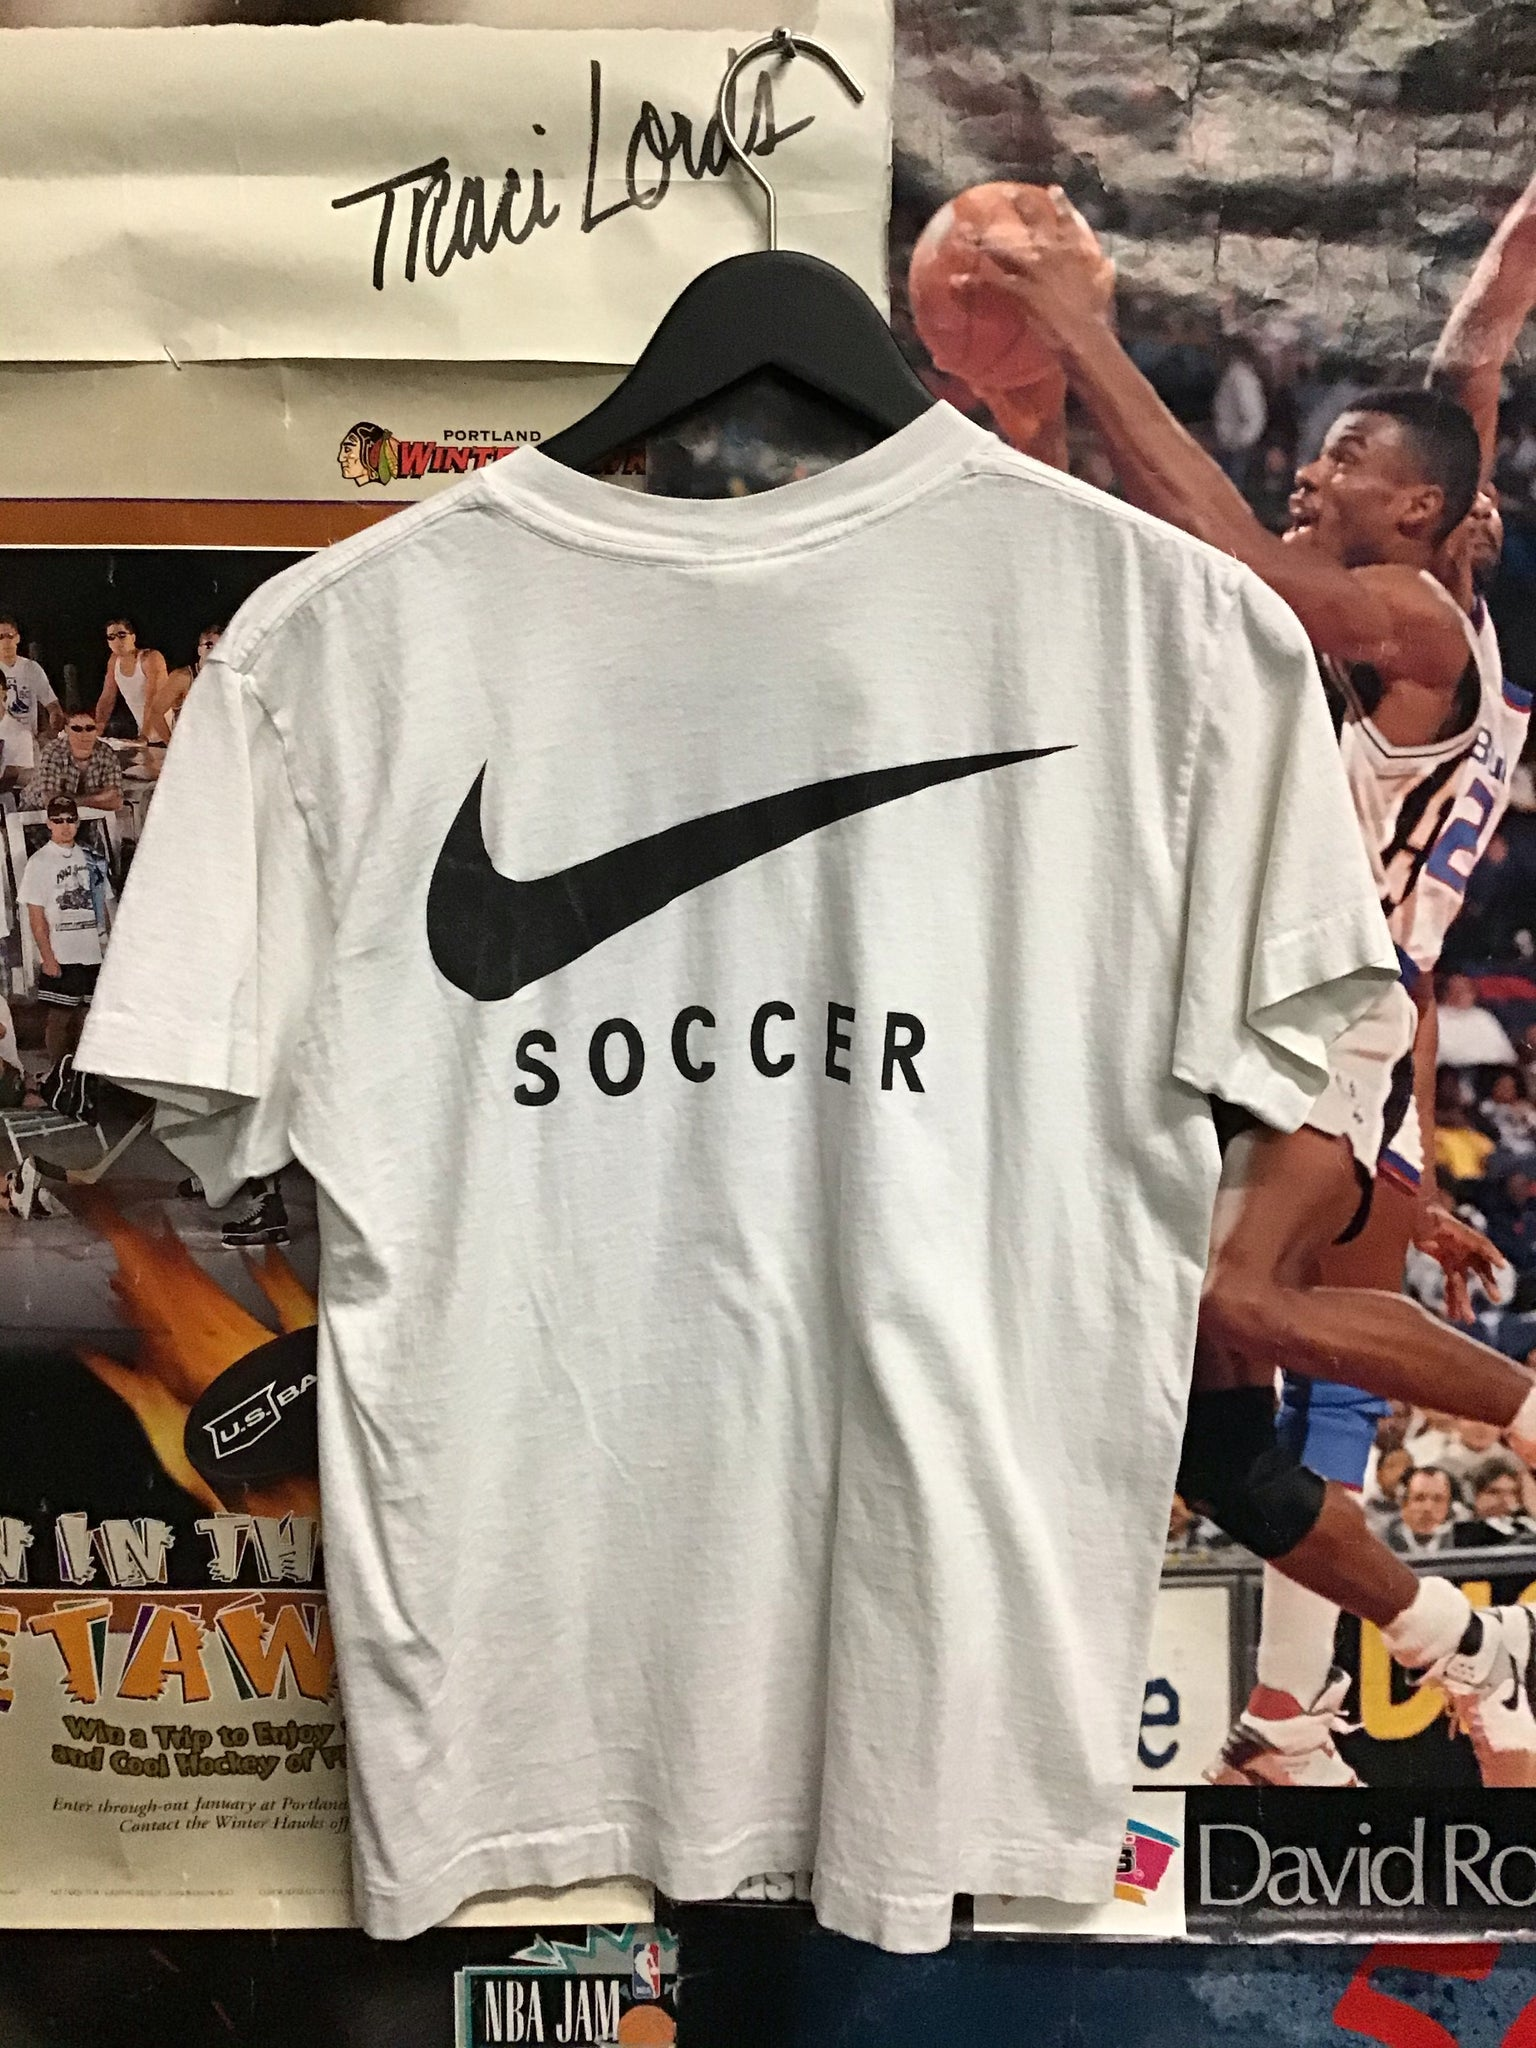 Nike Soccer Tee Youth Large - Decades of dope